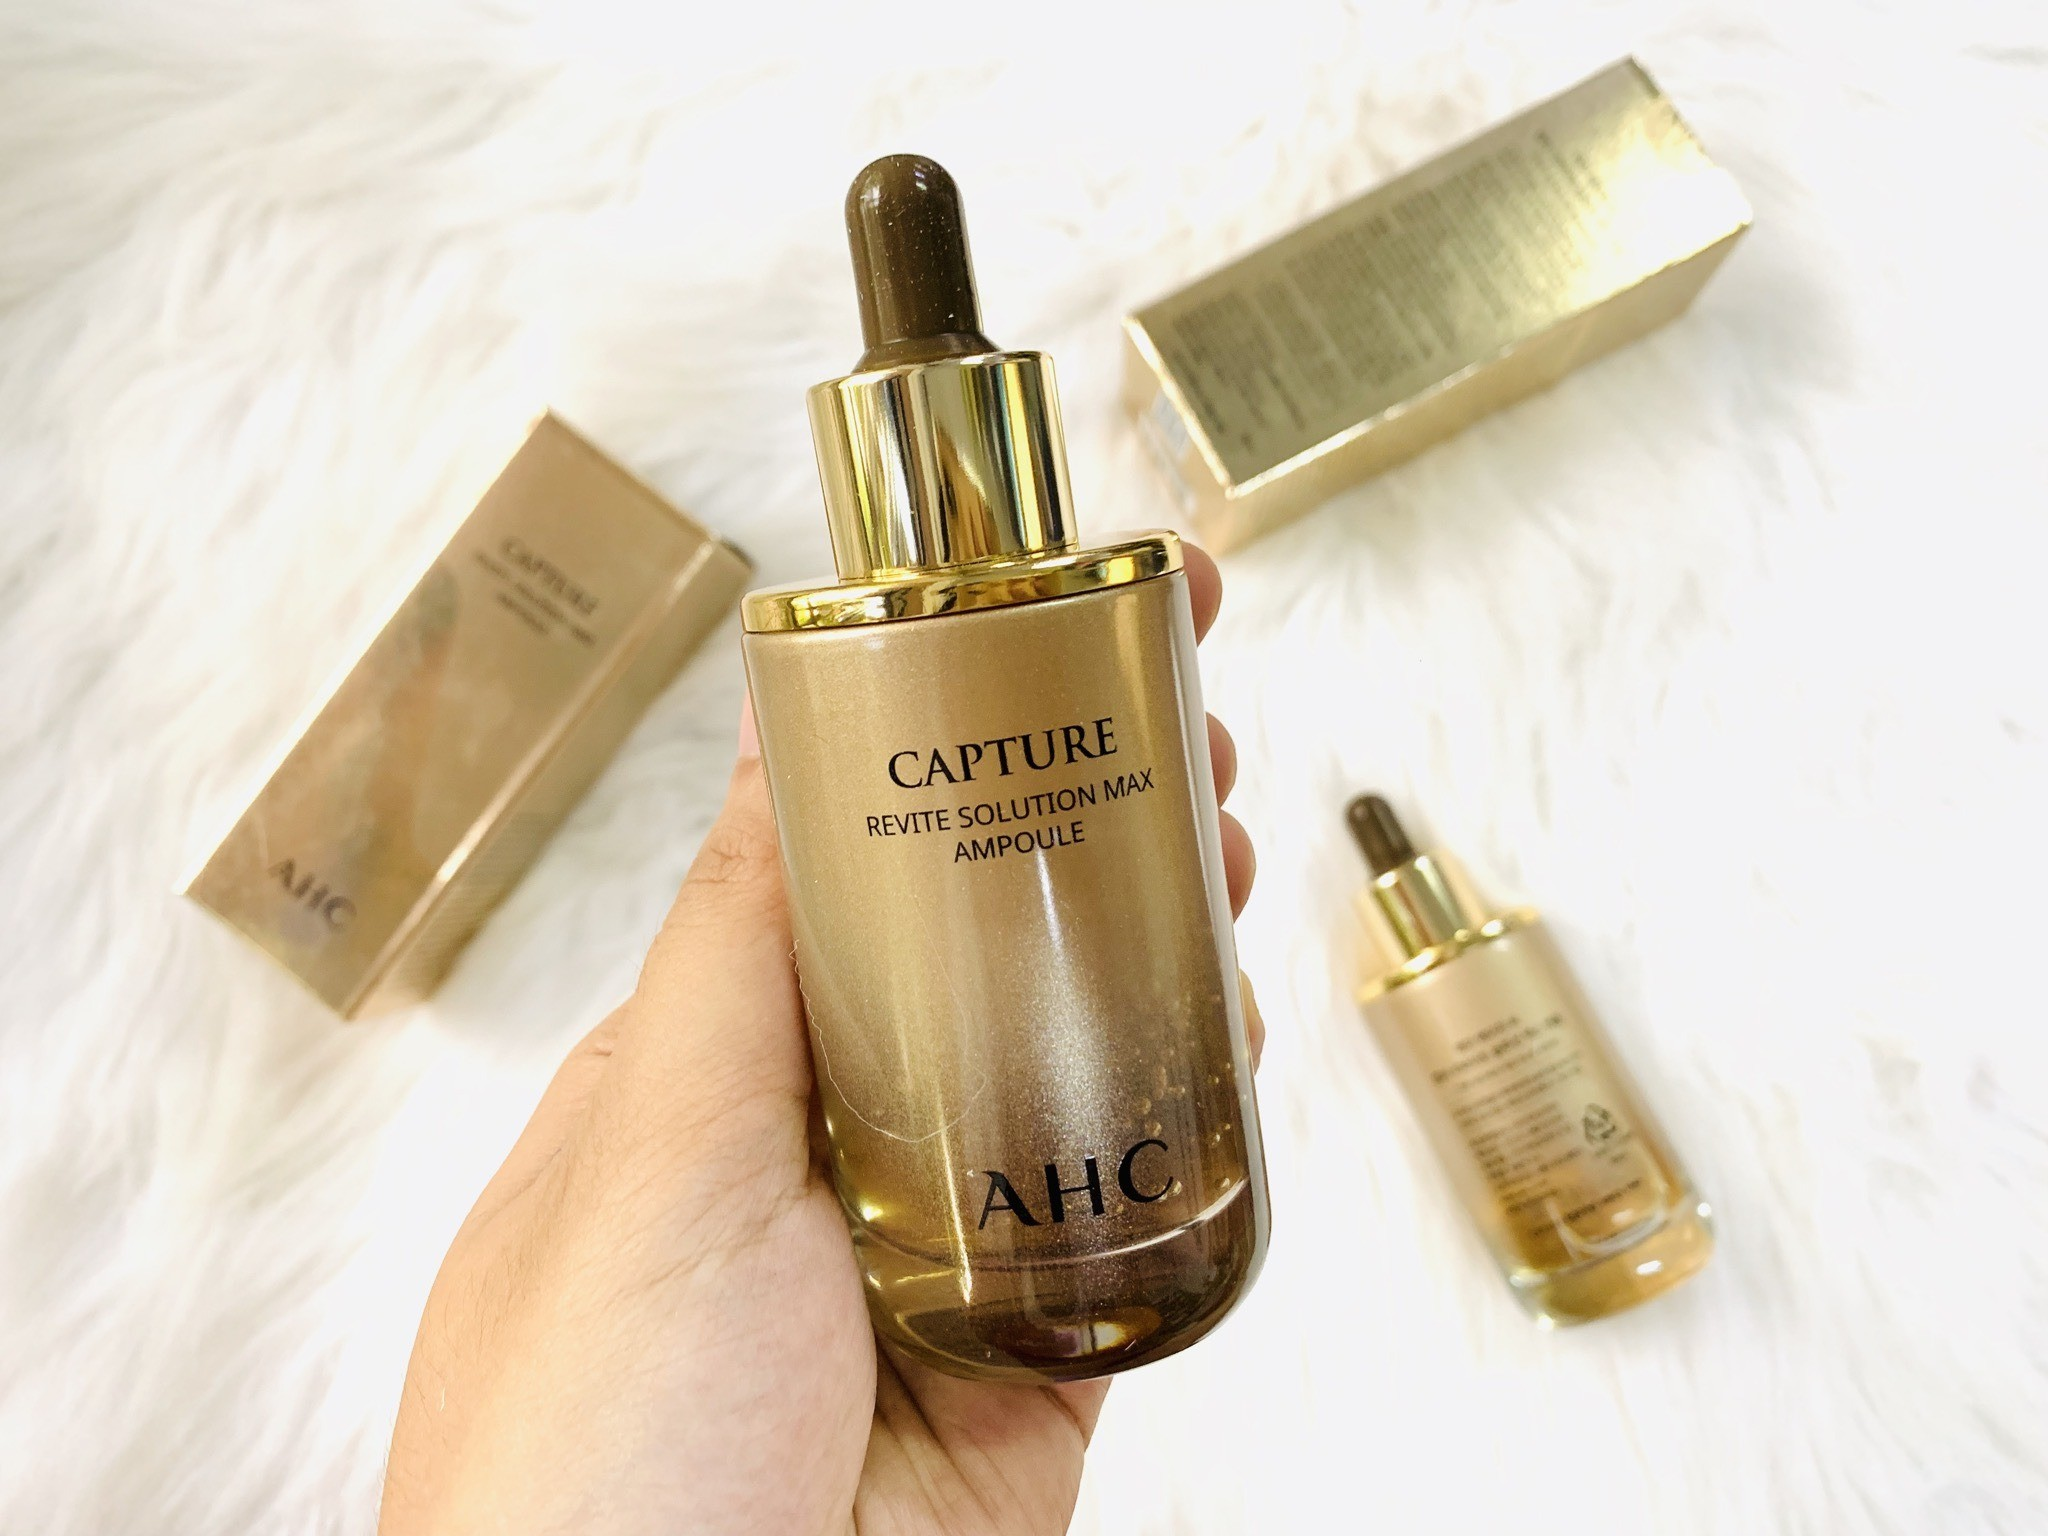 Tinh chất AHC Capture Revite Solution Max Ampoule review chi tiết